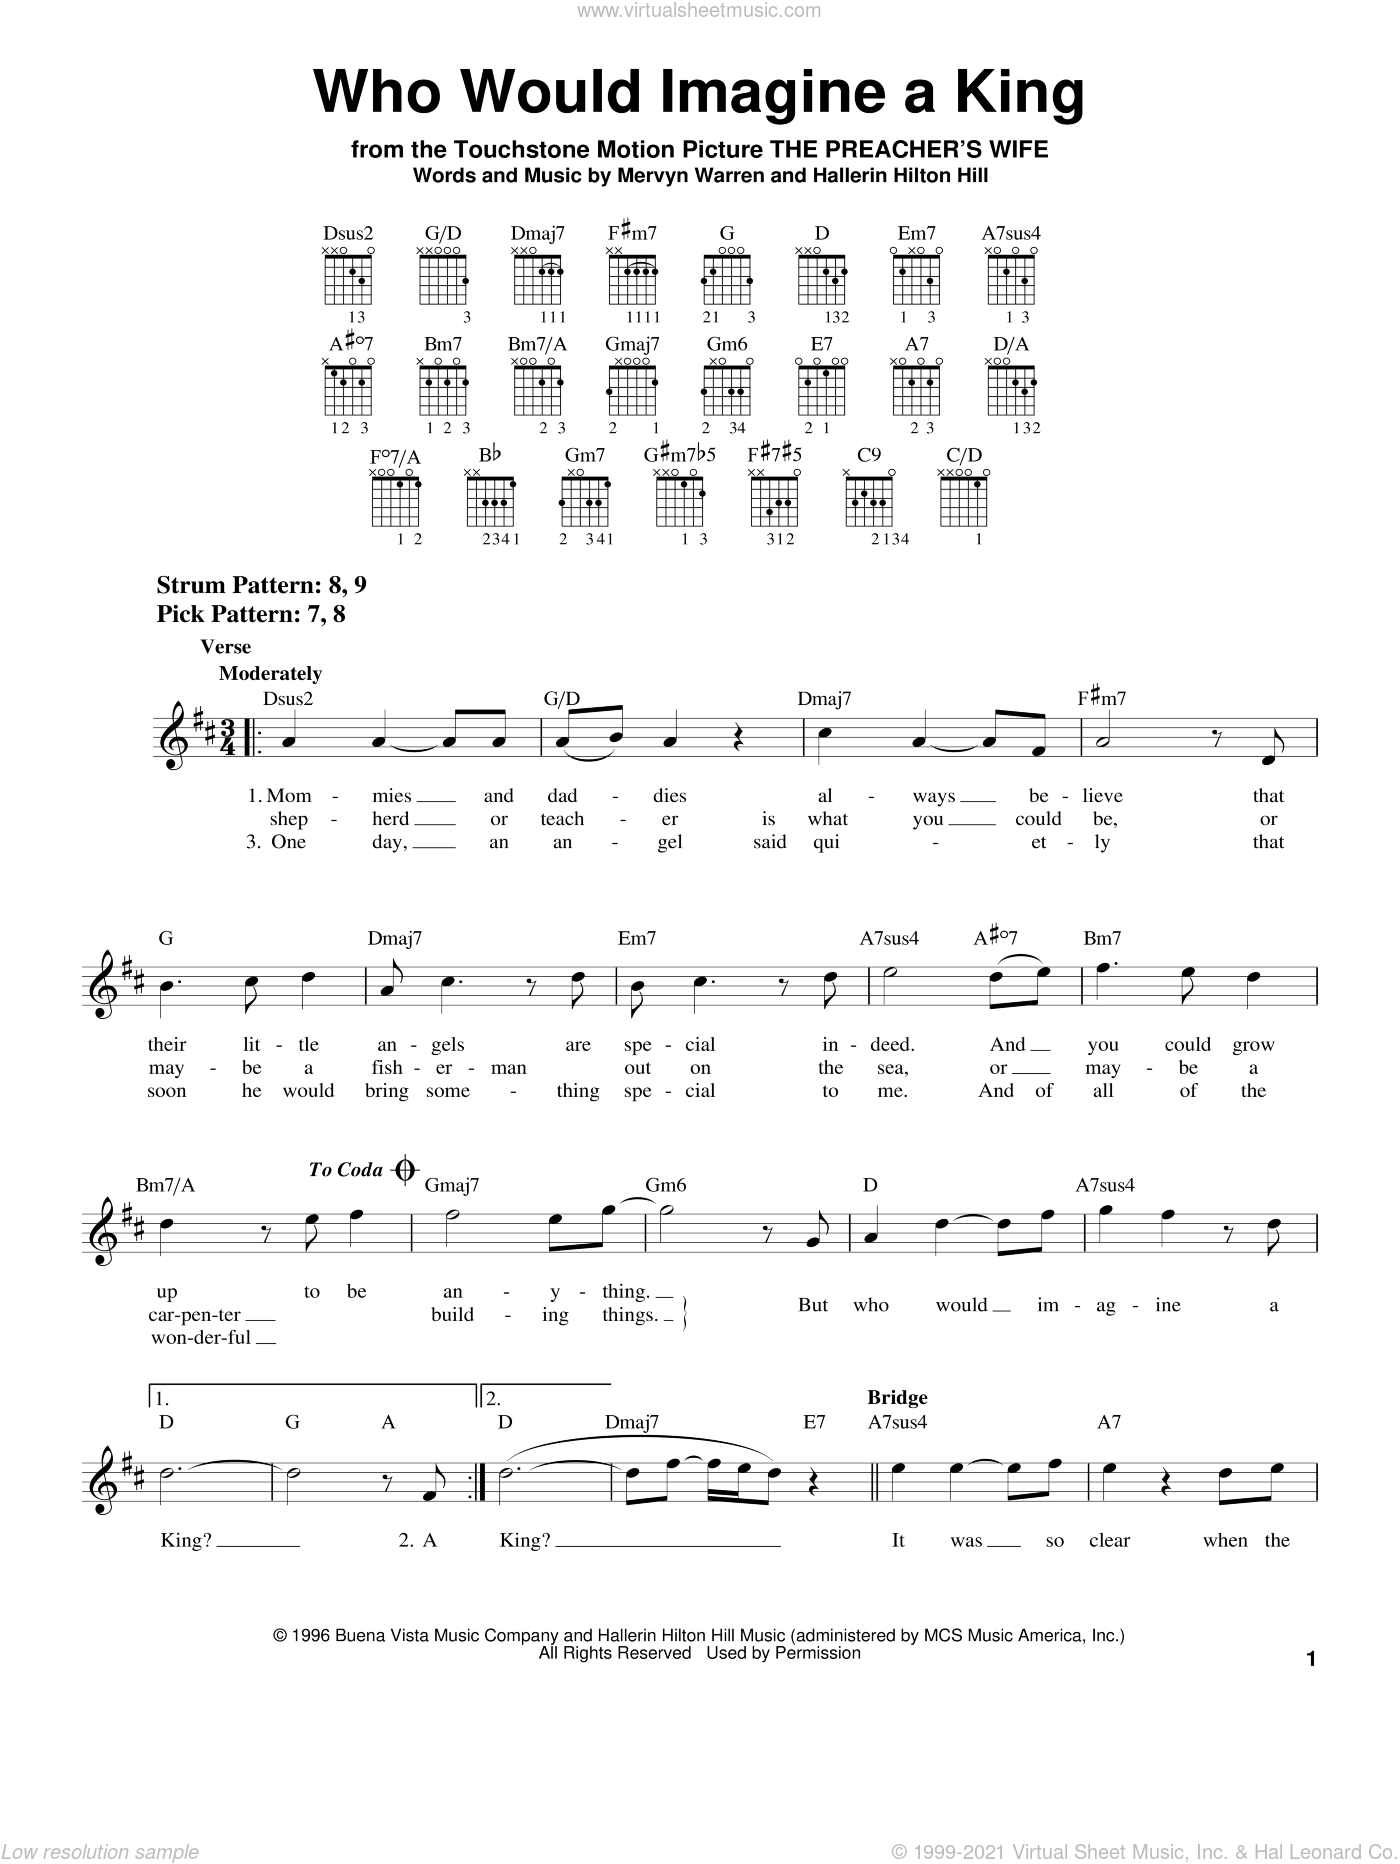 Who Would Imagine A King sheet music for guitar solo (chords) by Mervyn Warren